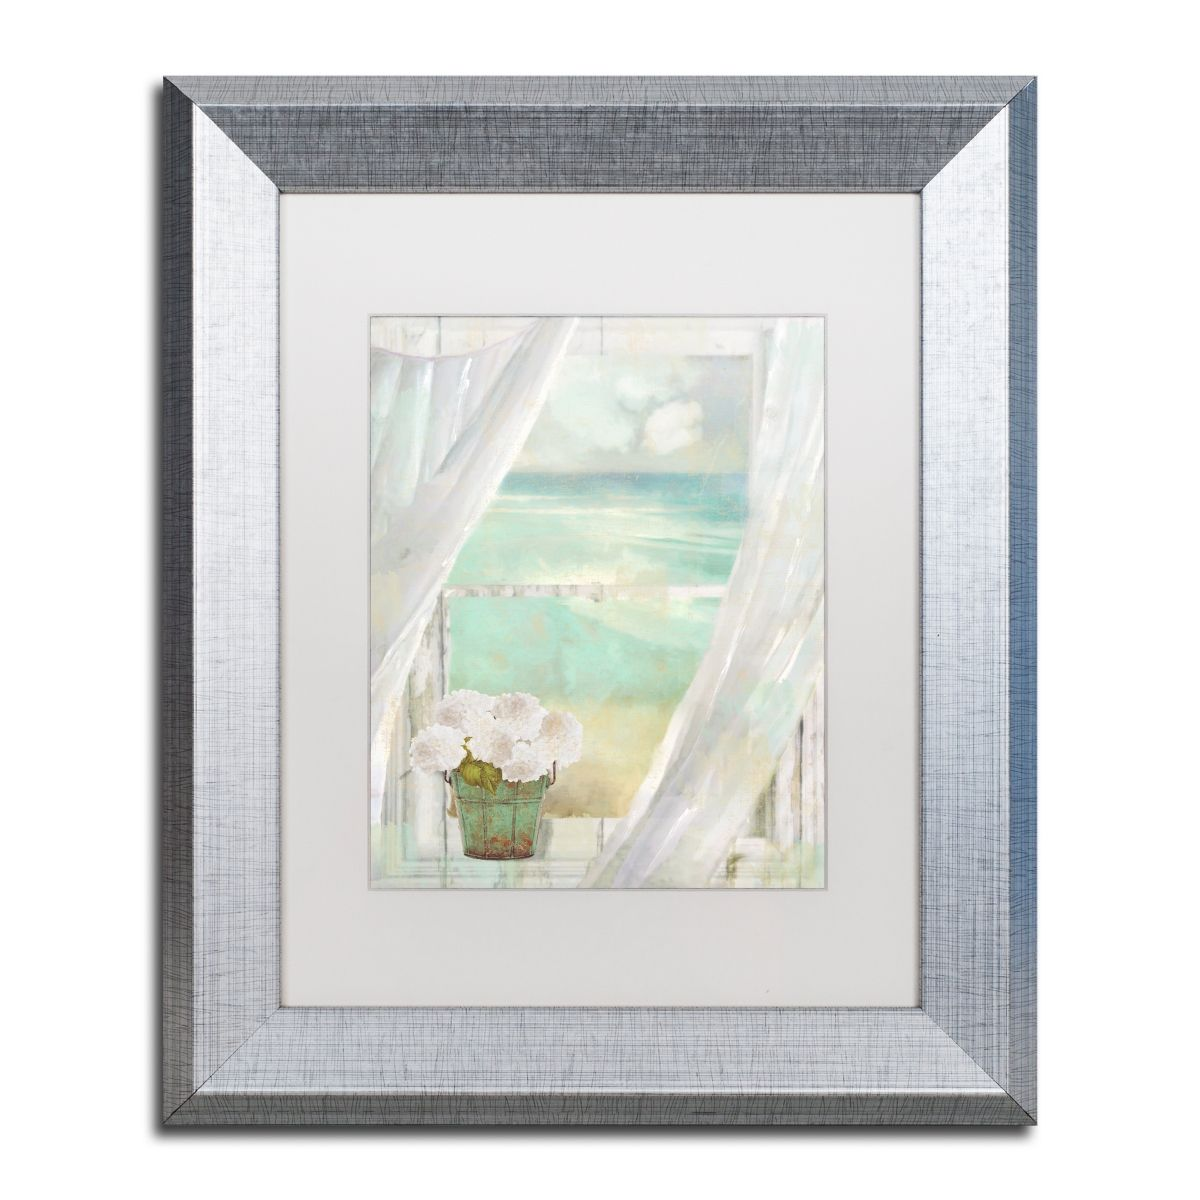 Color Bakery Summer Me Ii Matted Framed Art 11 X 14 Silver Framed Art Art Painting Frames